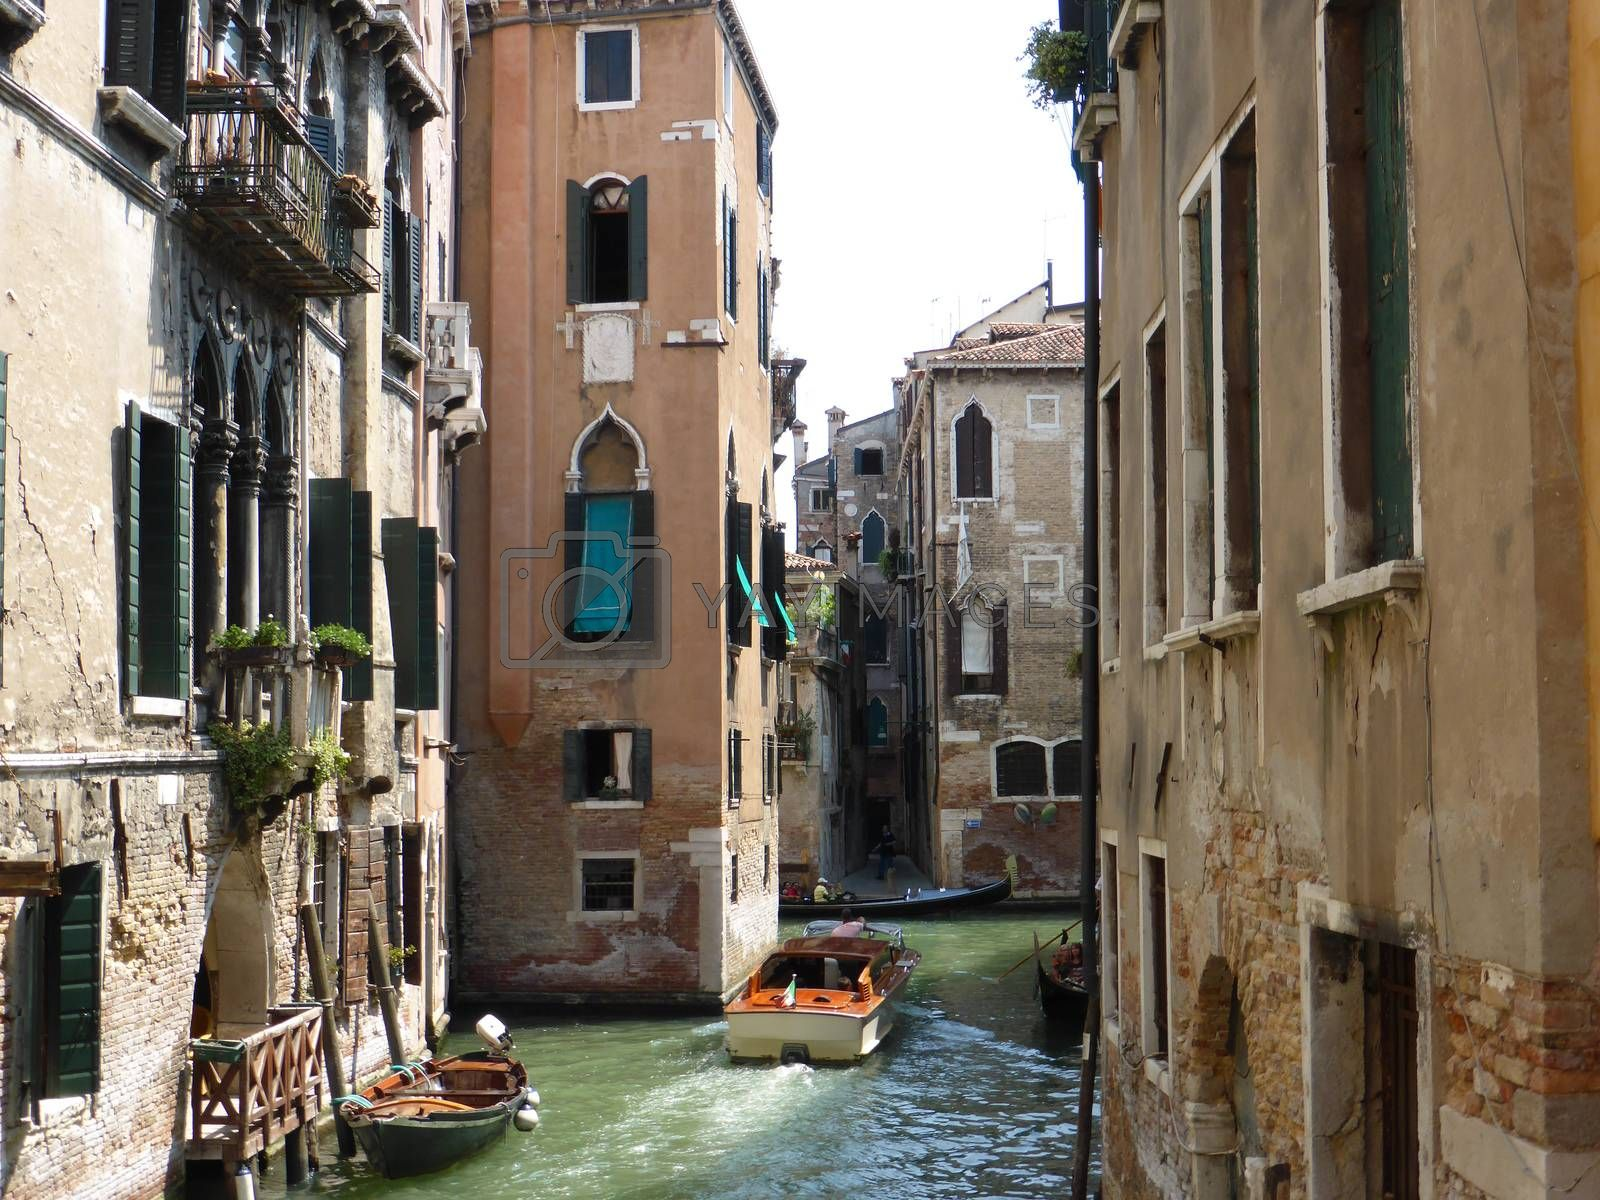 Venice, Italy ��� July, 21: the Festival of the Redeemer in Venice on July 21, 2013. From 1577, the Venetians��� favourite event is a thanksgiving to Jesus Christ for the end of the Plague. The fireworks show is considered the best in Europe